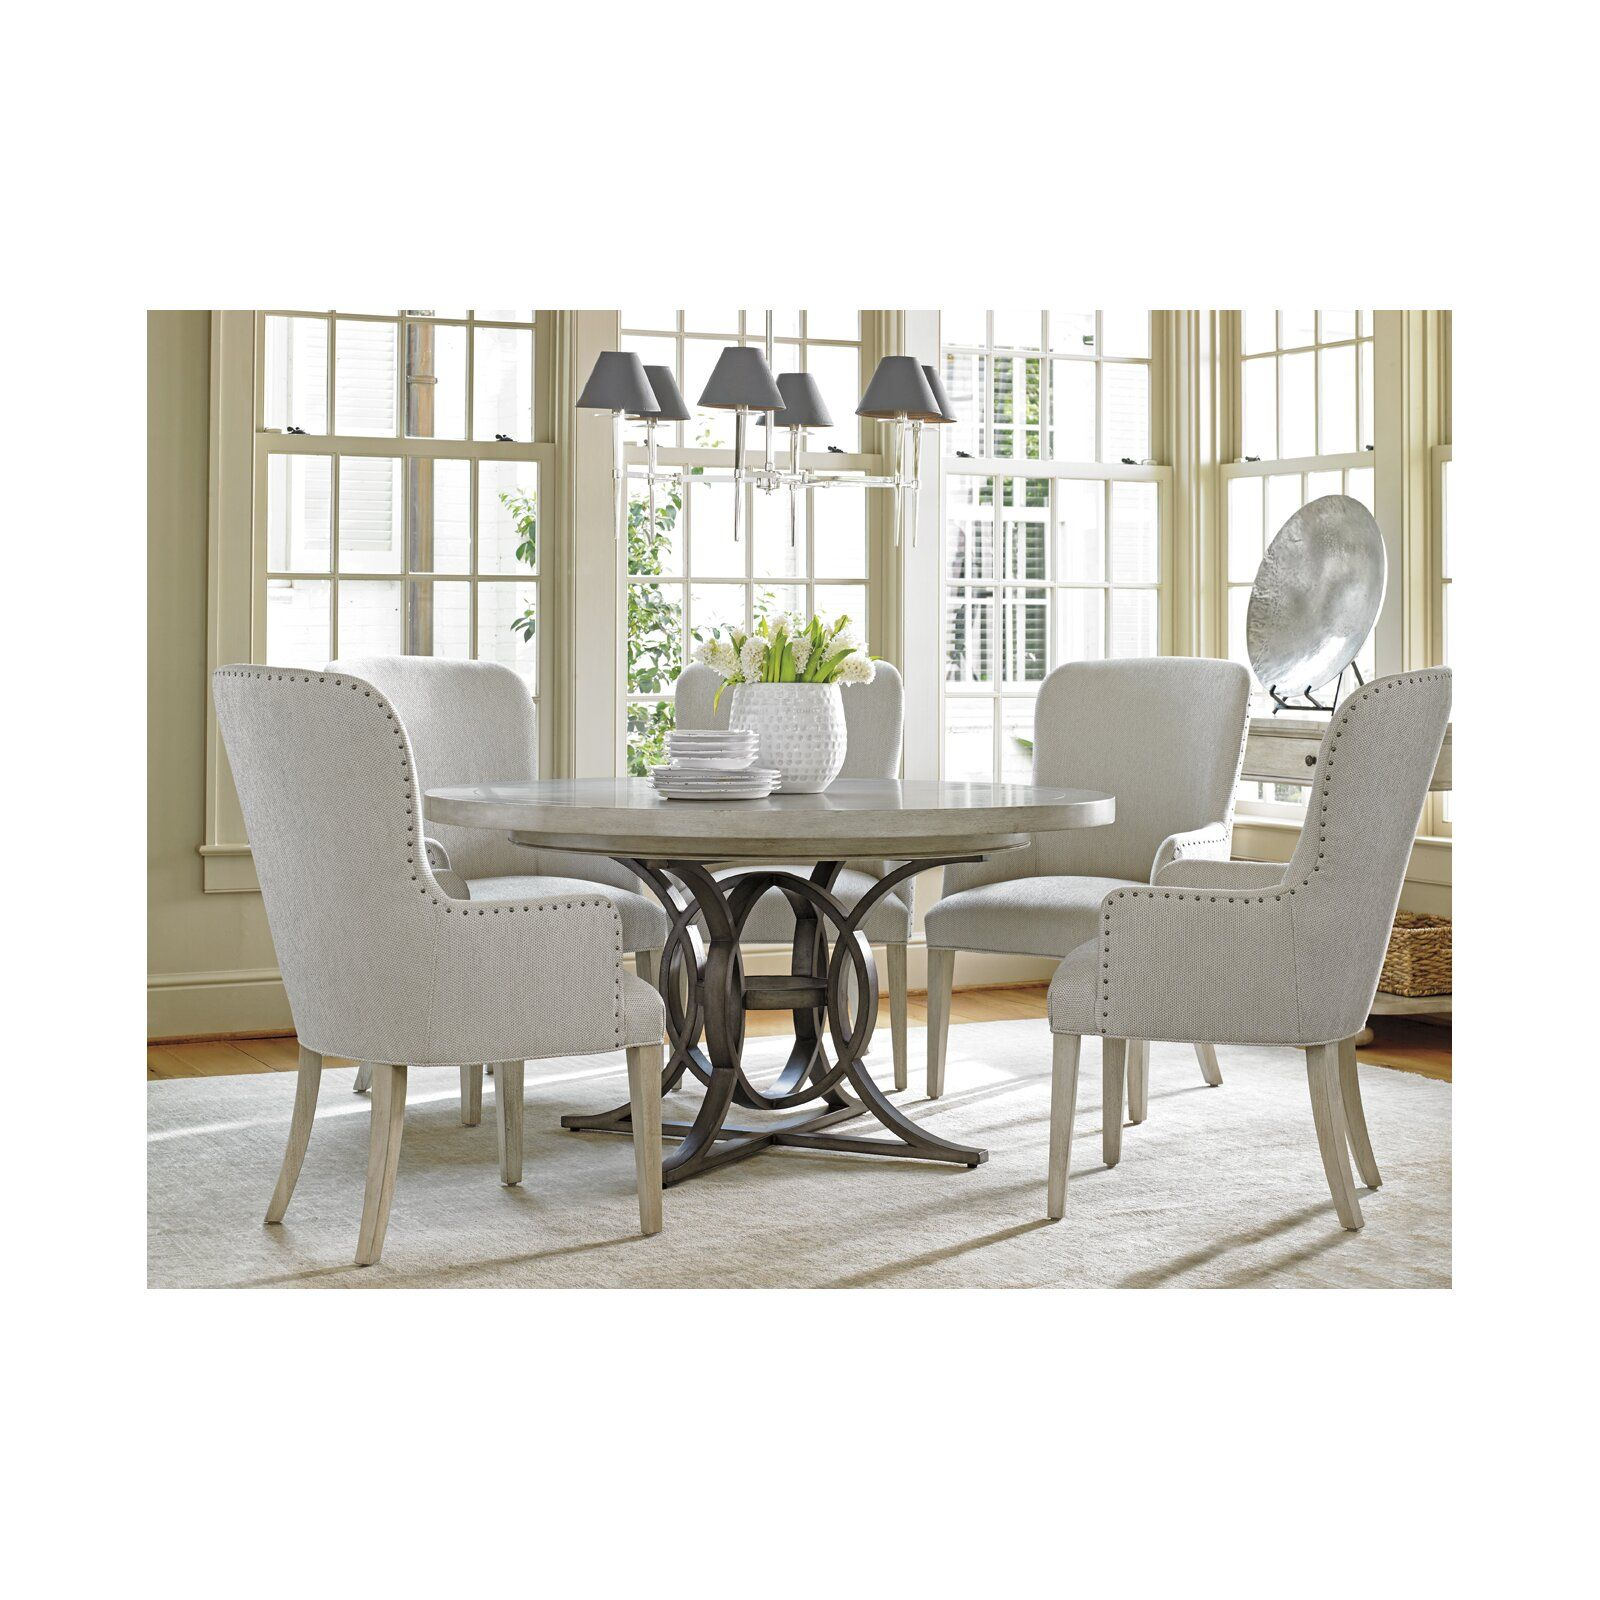 Oyster Bay Calerton Extendable Dining Table Round Dining Room Sets Round Dining Room Dining Room Sets